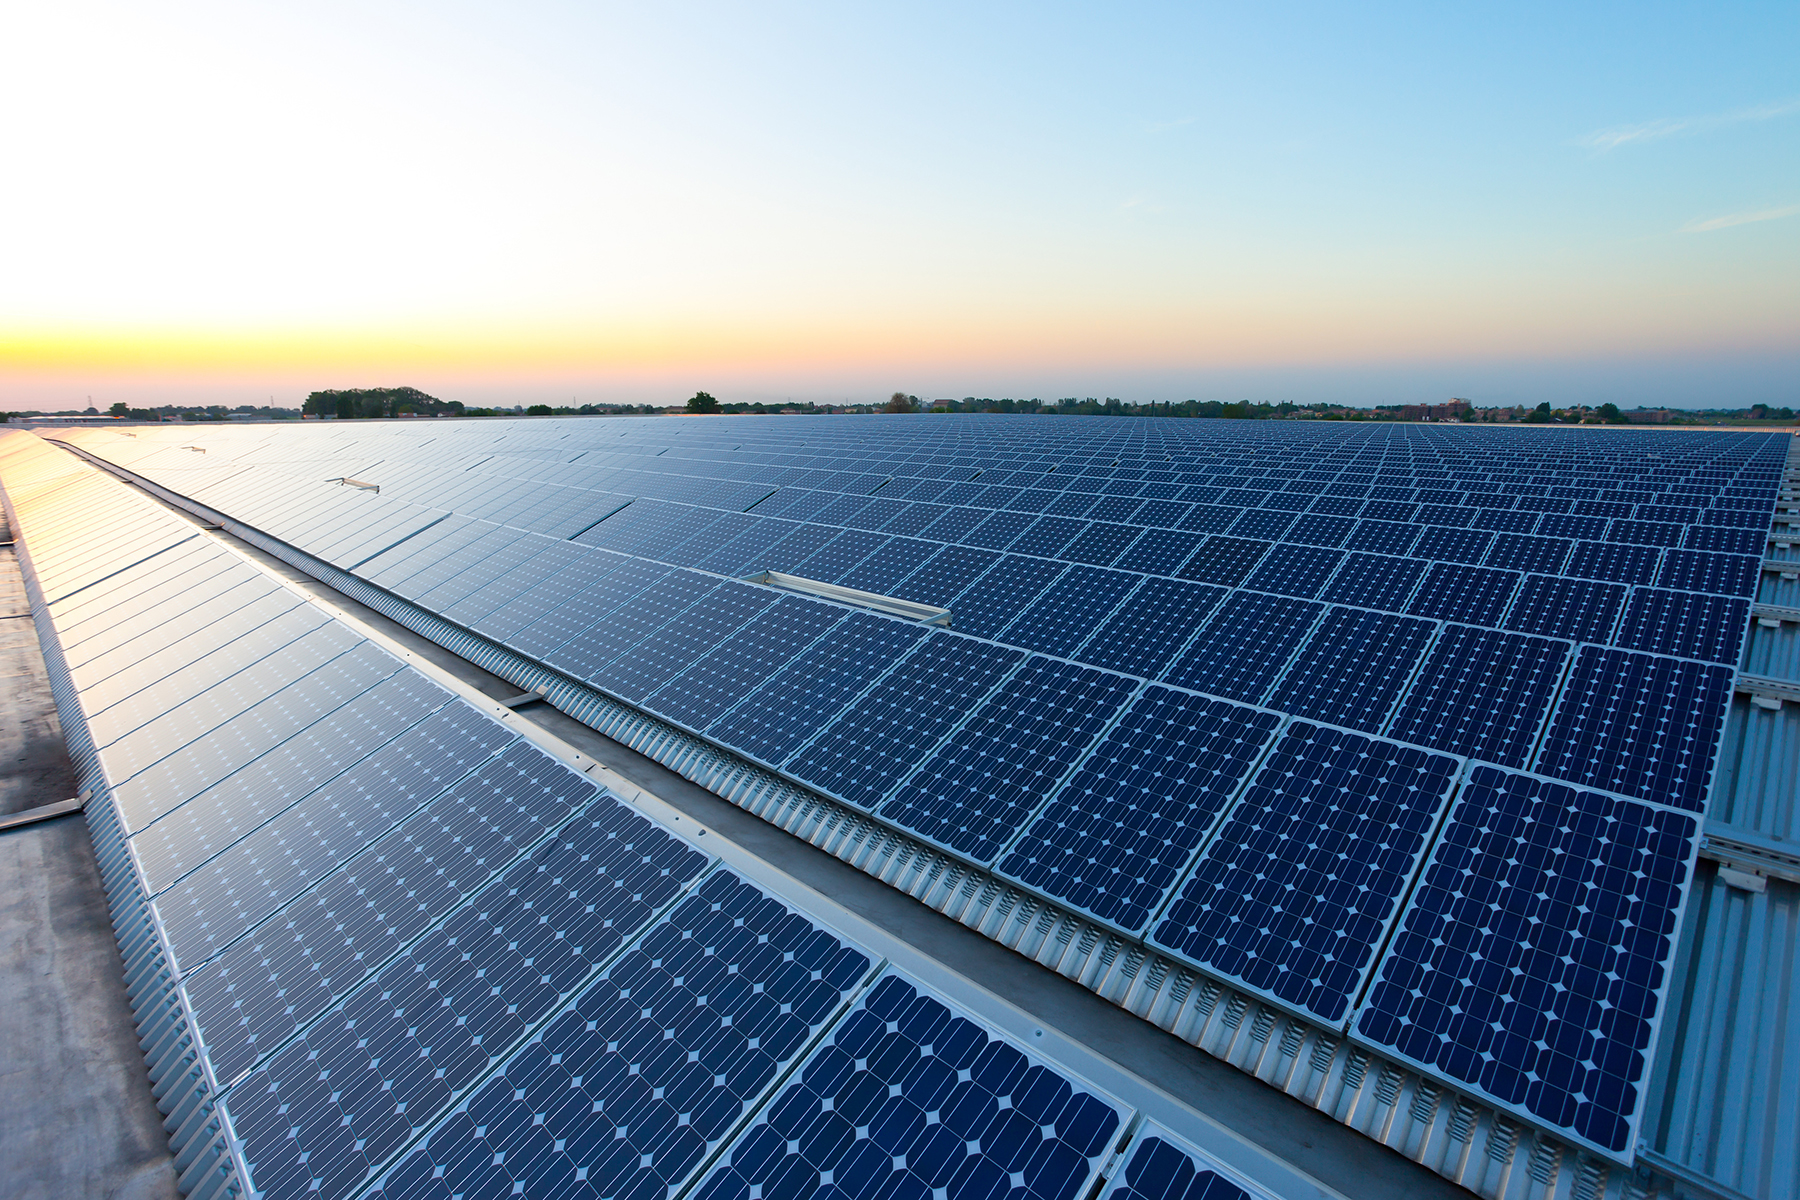 Current and upcoming innovations in solar cell technologies